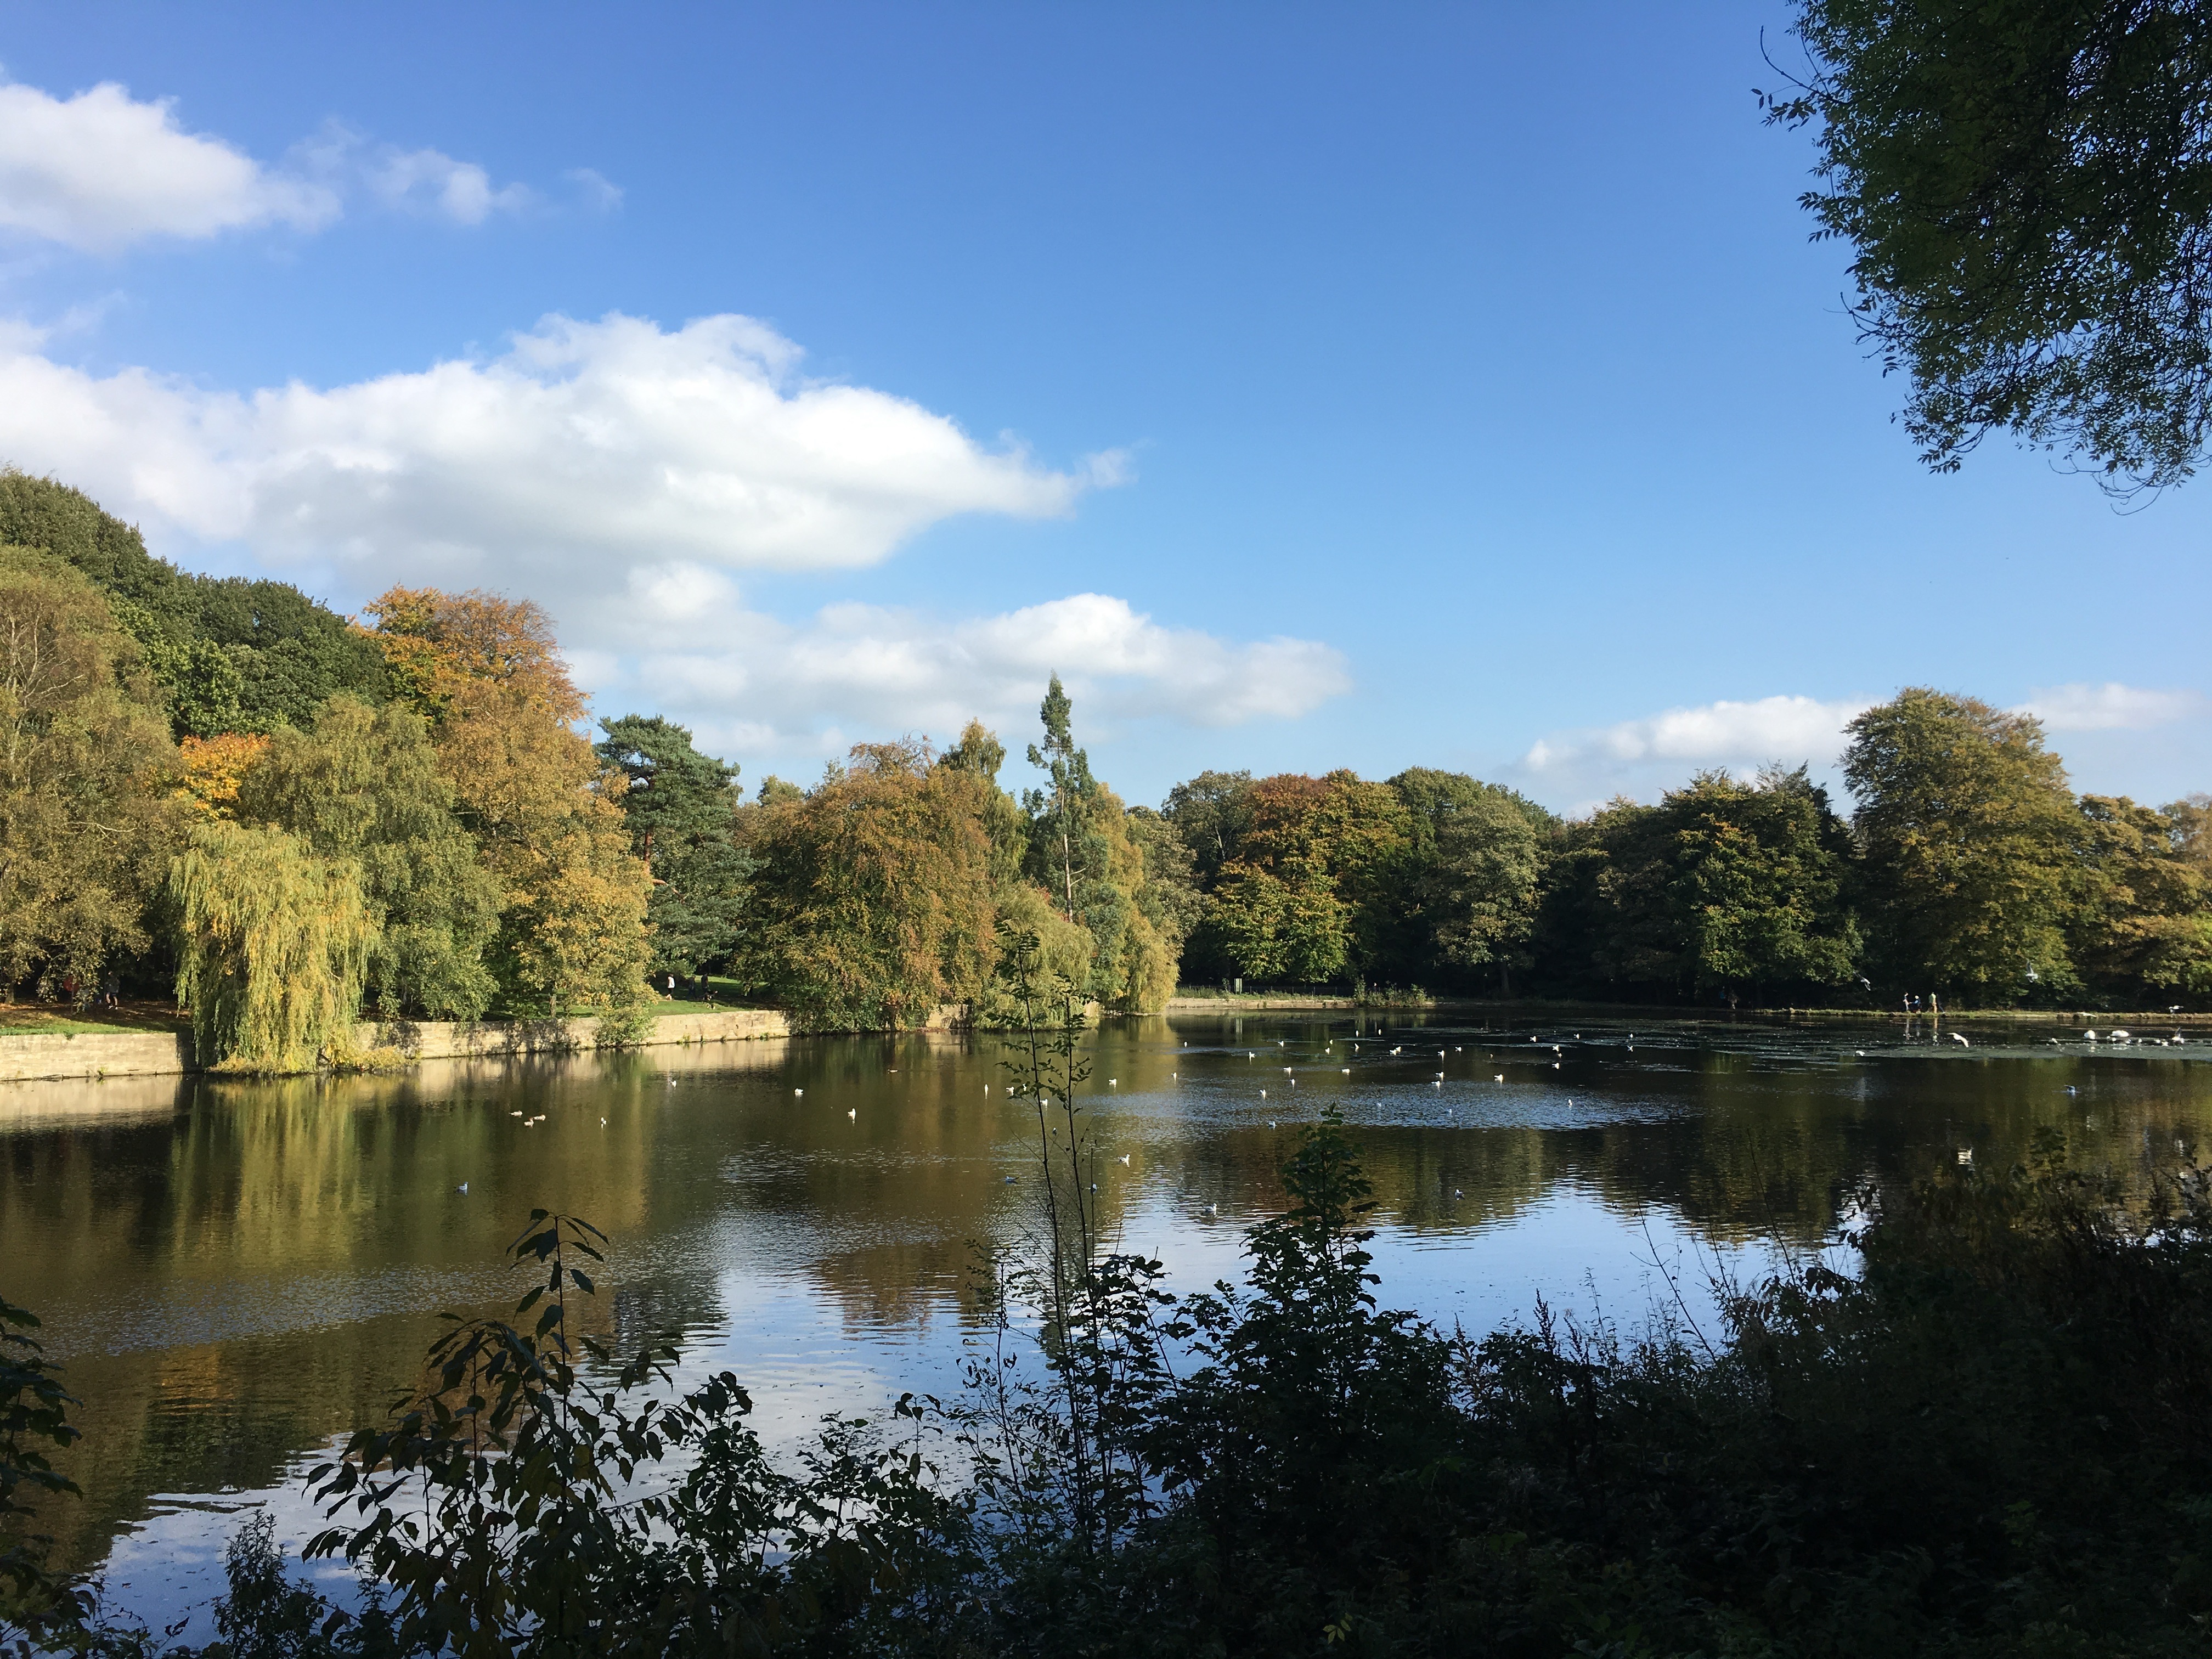 Student Ryan's image of Roundhay Park